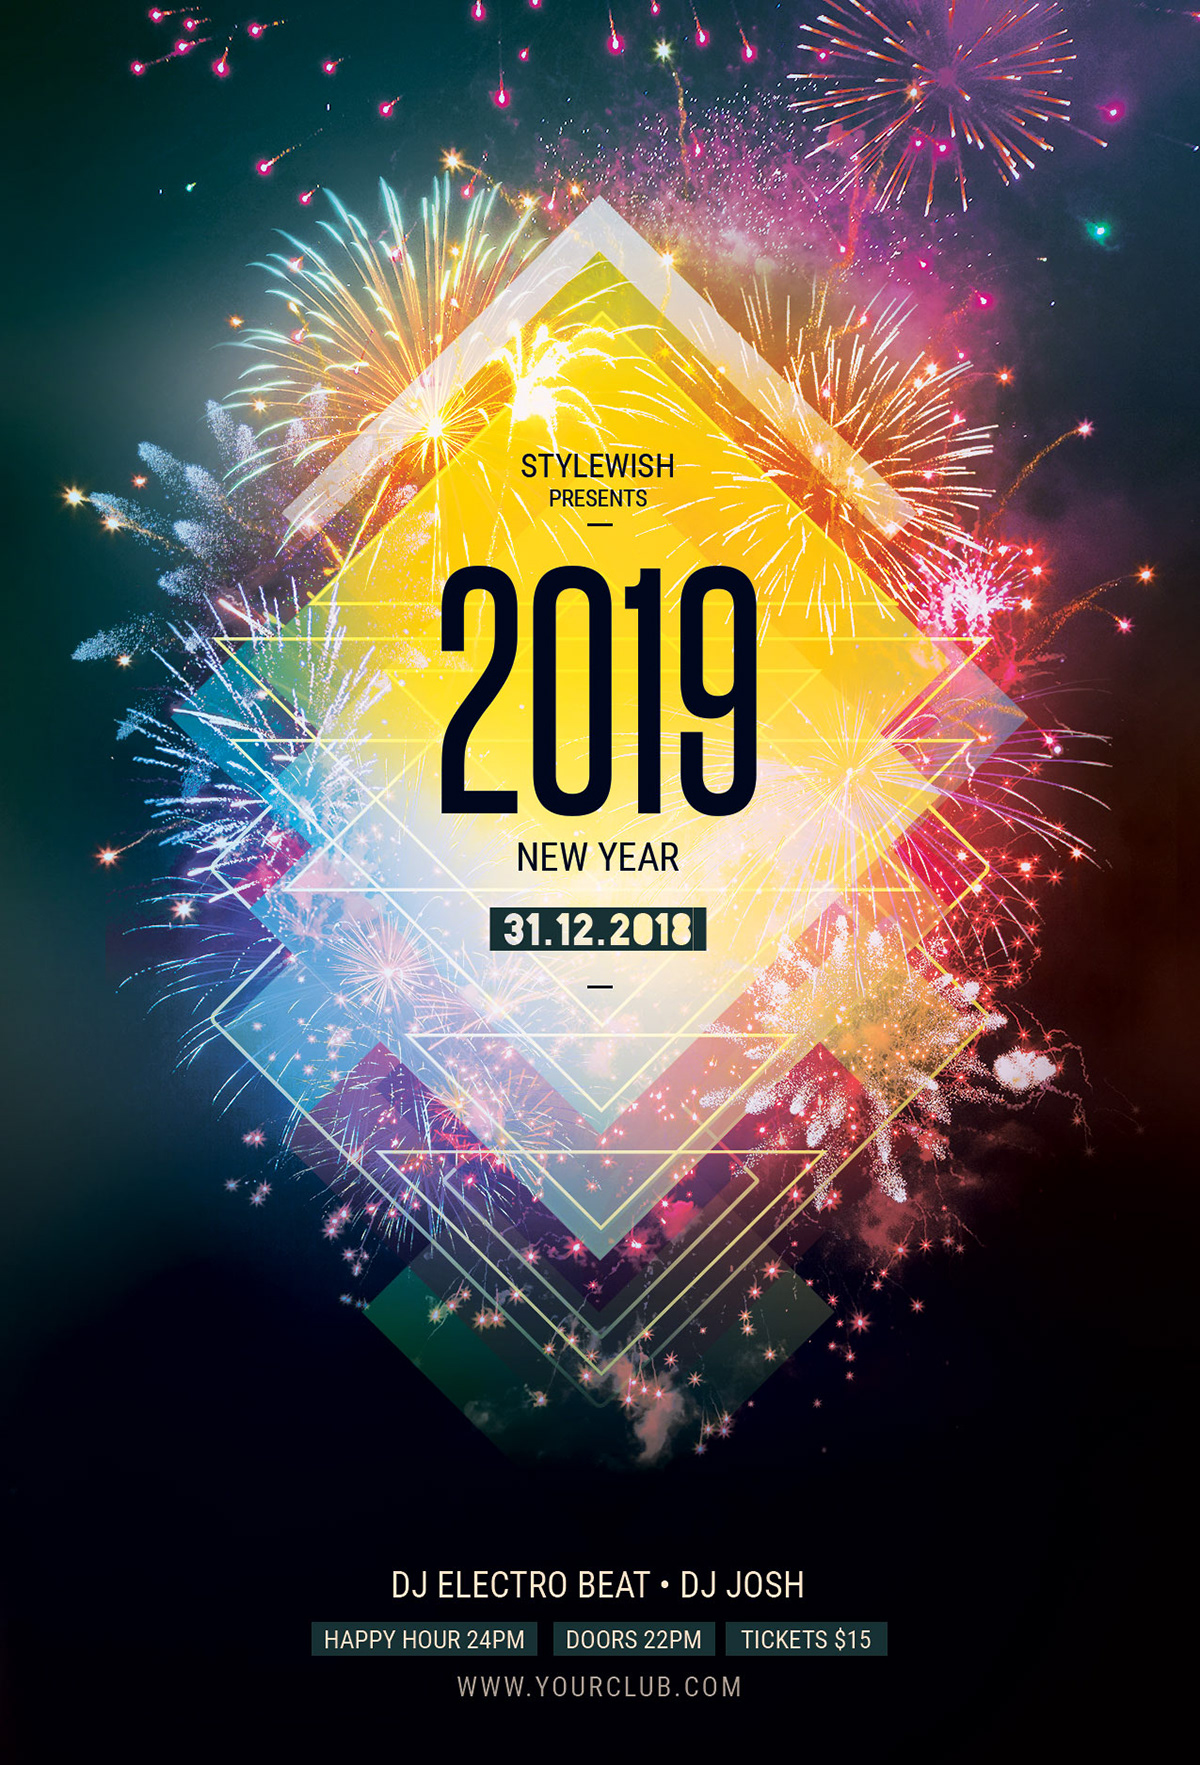 this psd flyer template is designed to promote a new year event